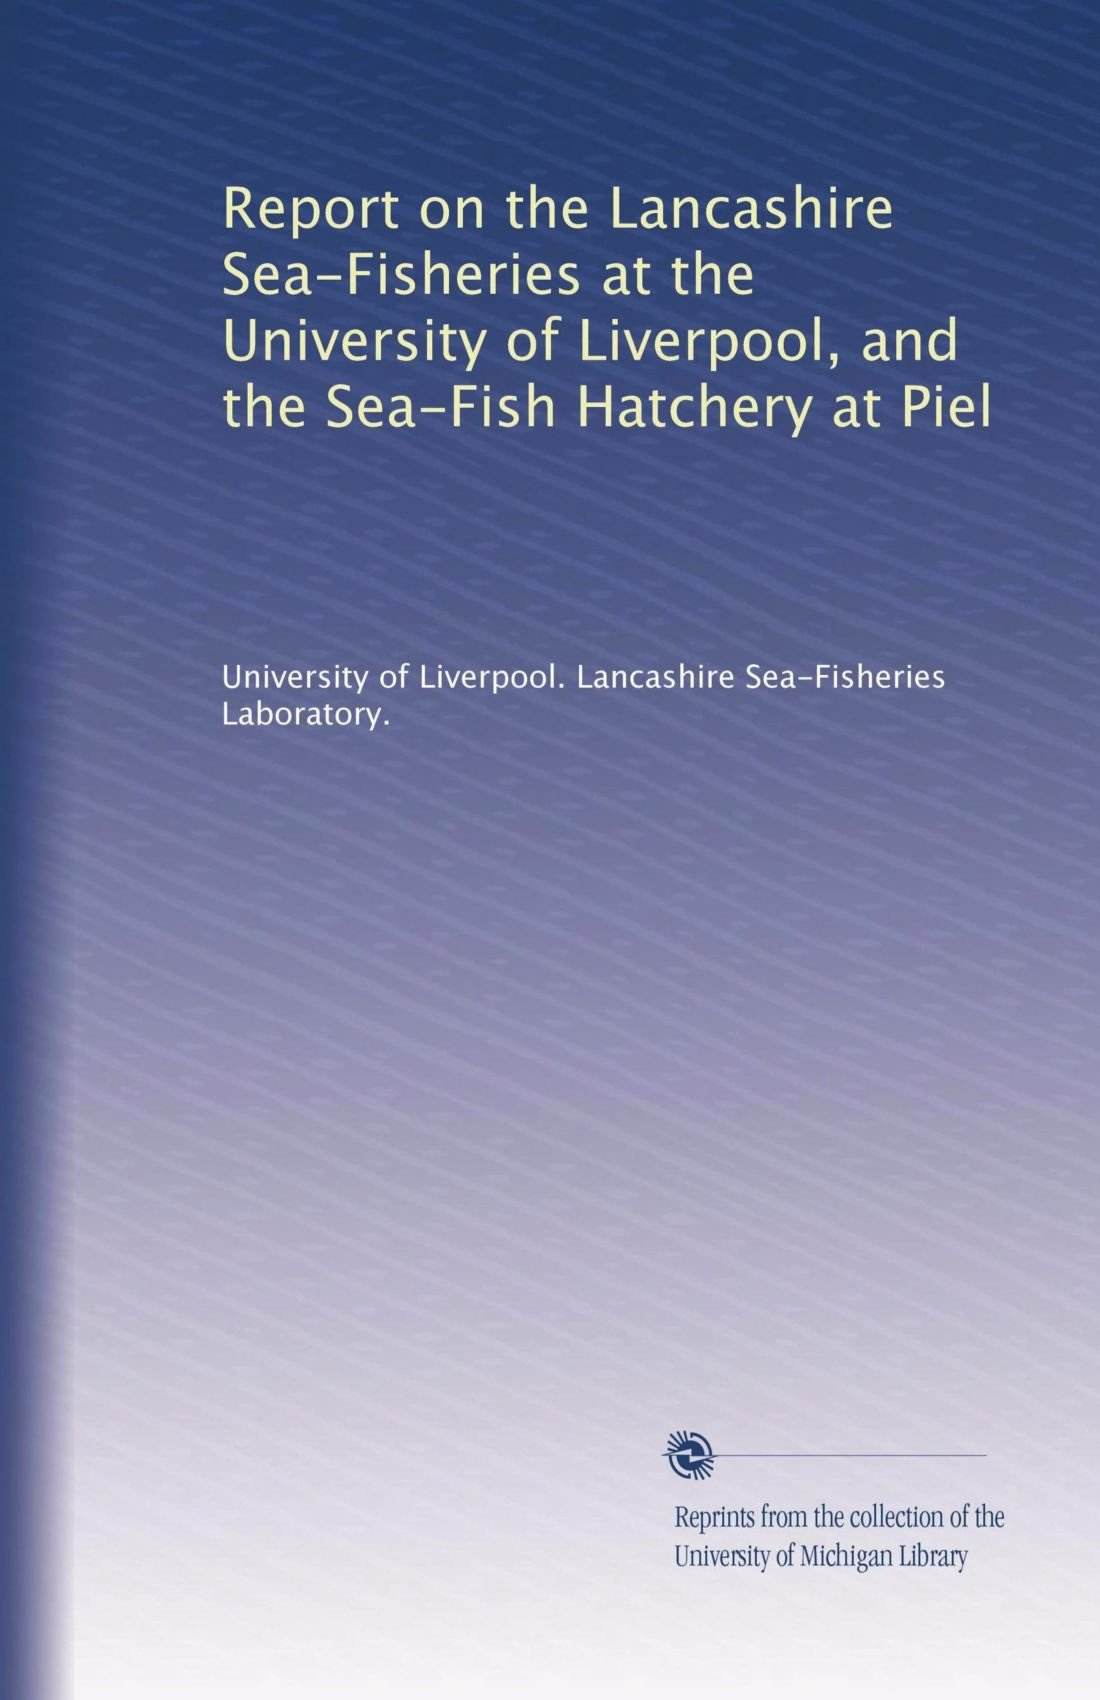 Download Report on the Lancashire Sea-Fisheries at the University of Liverpool, and the Sea-Fish Hatchery at Piel pdf